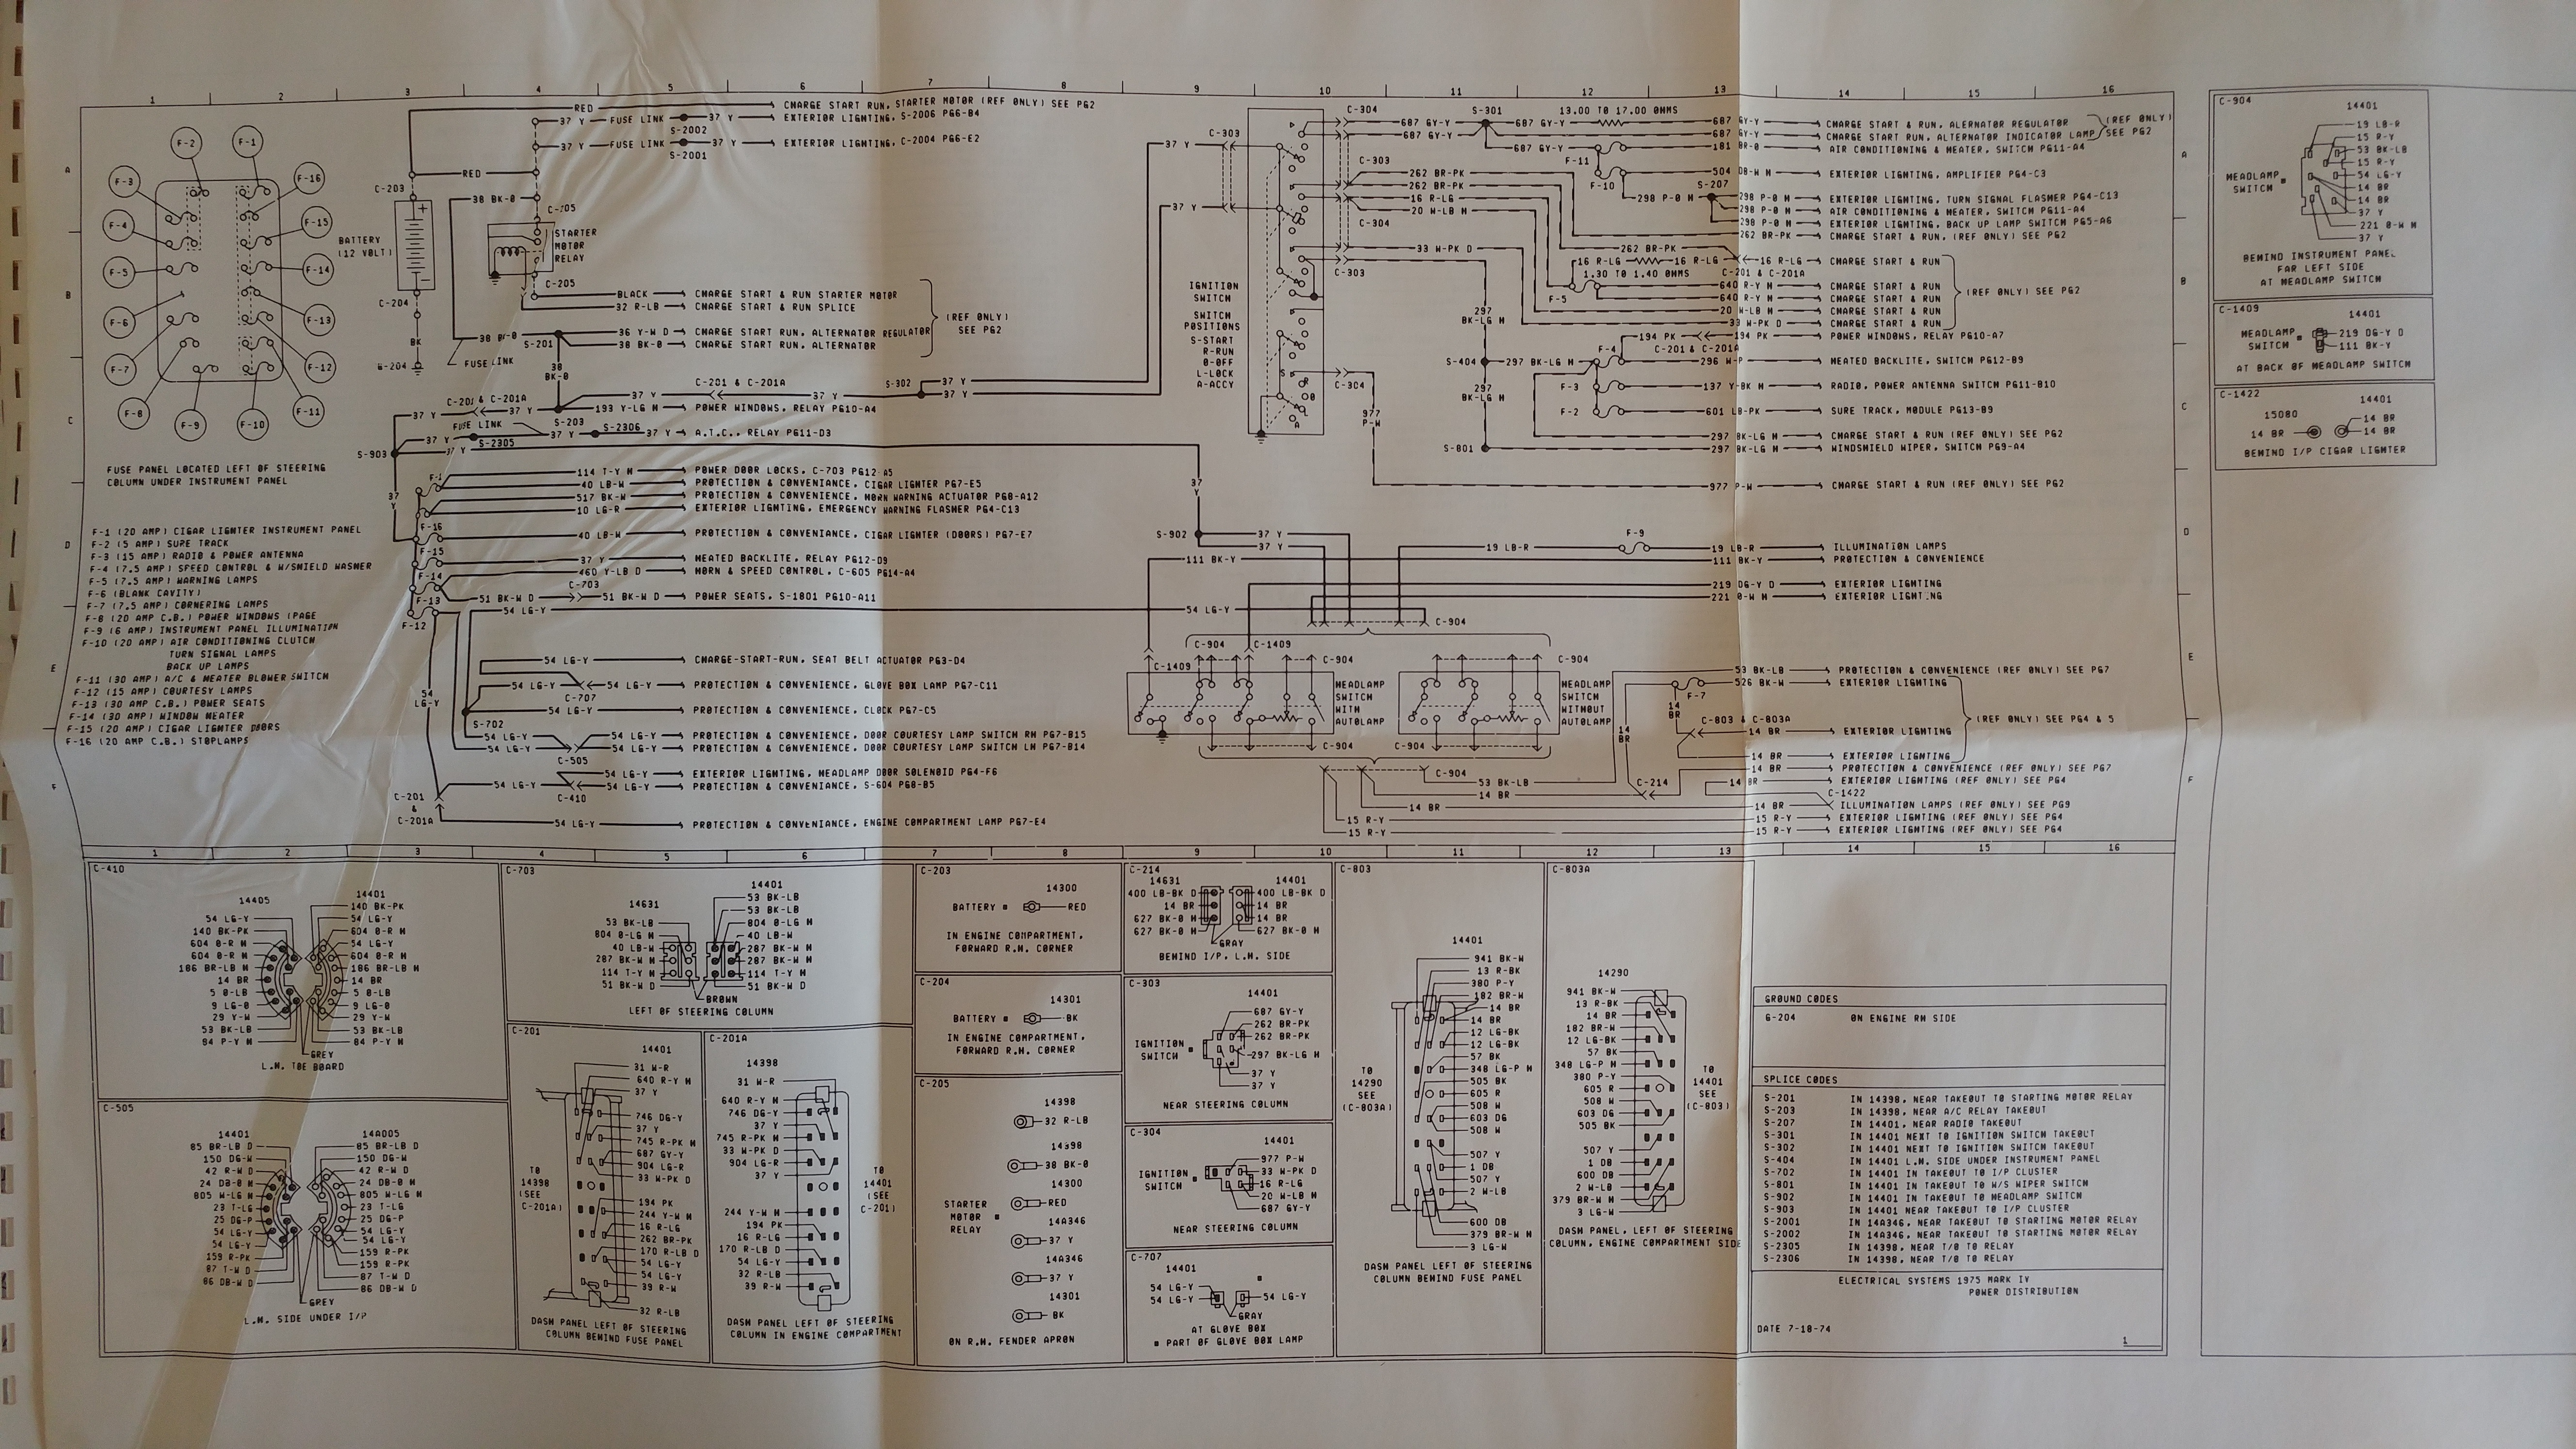 wiring diagram page 1